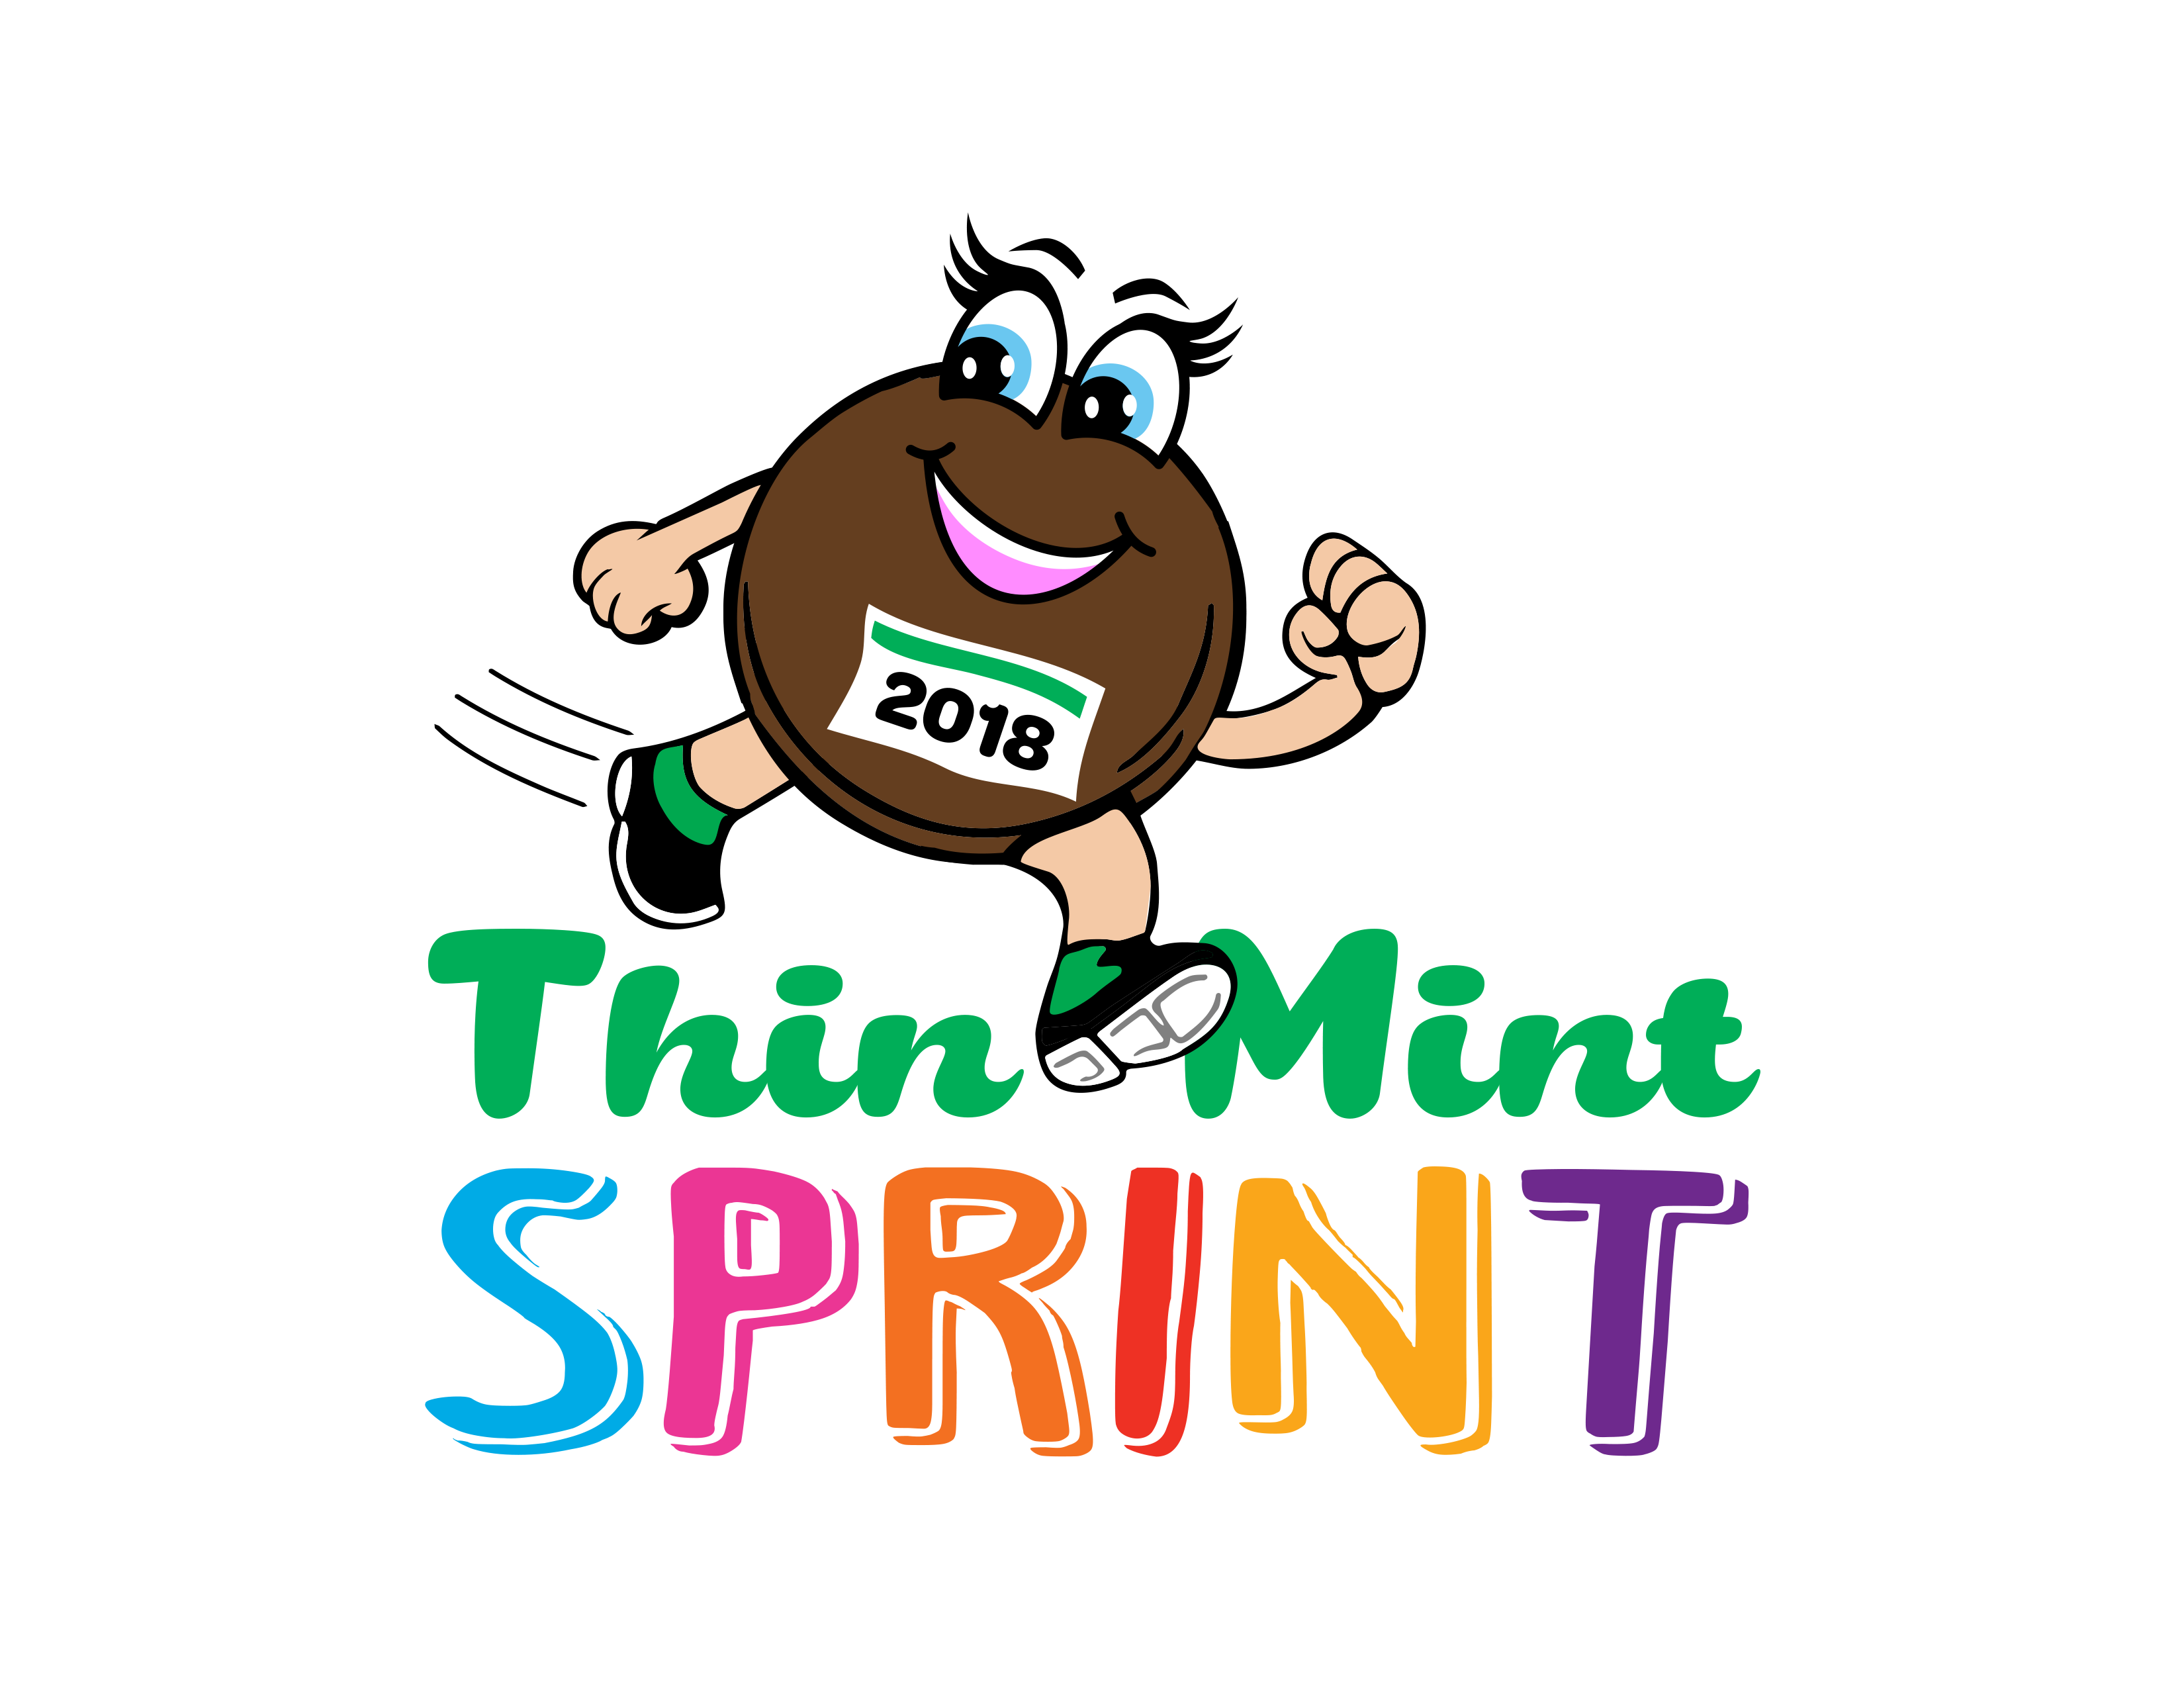 Thin Mint Sprint Logo 2018